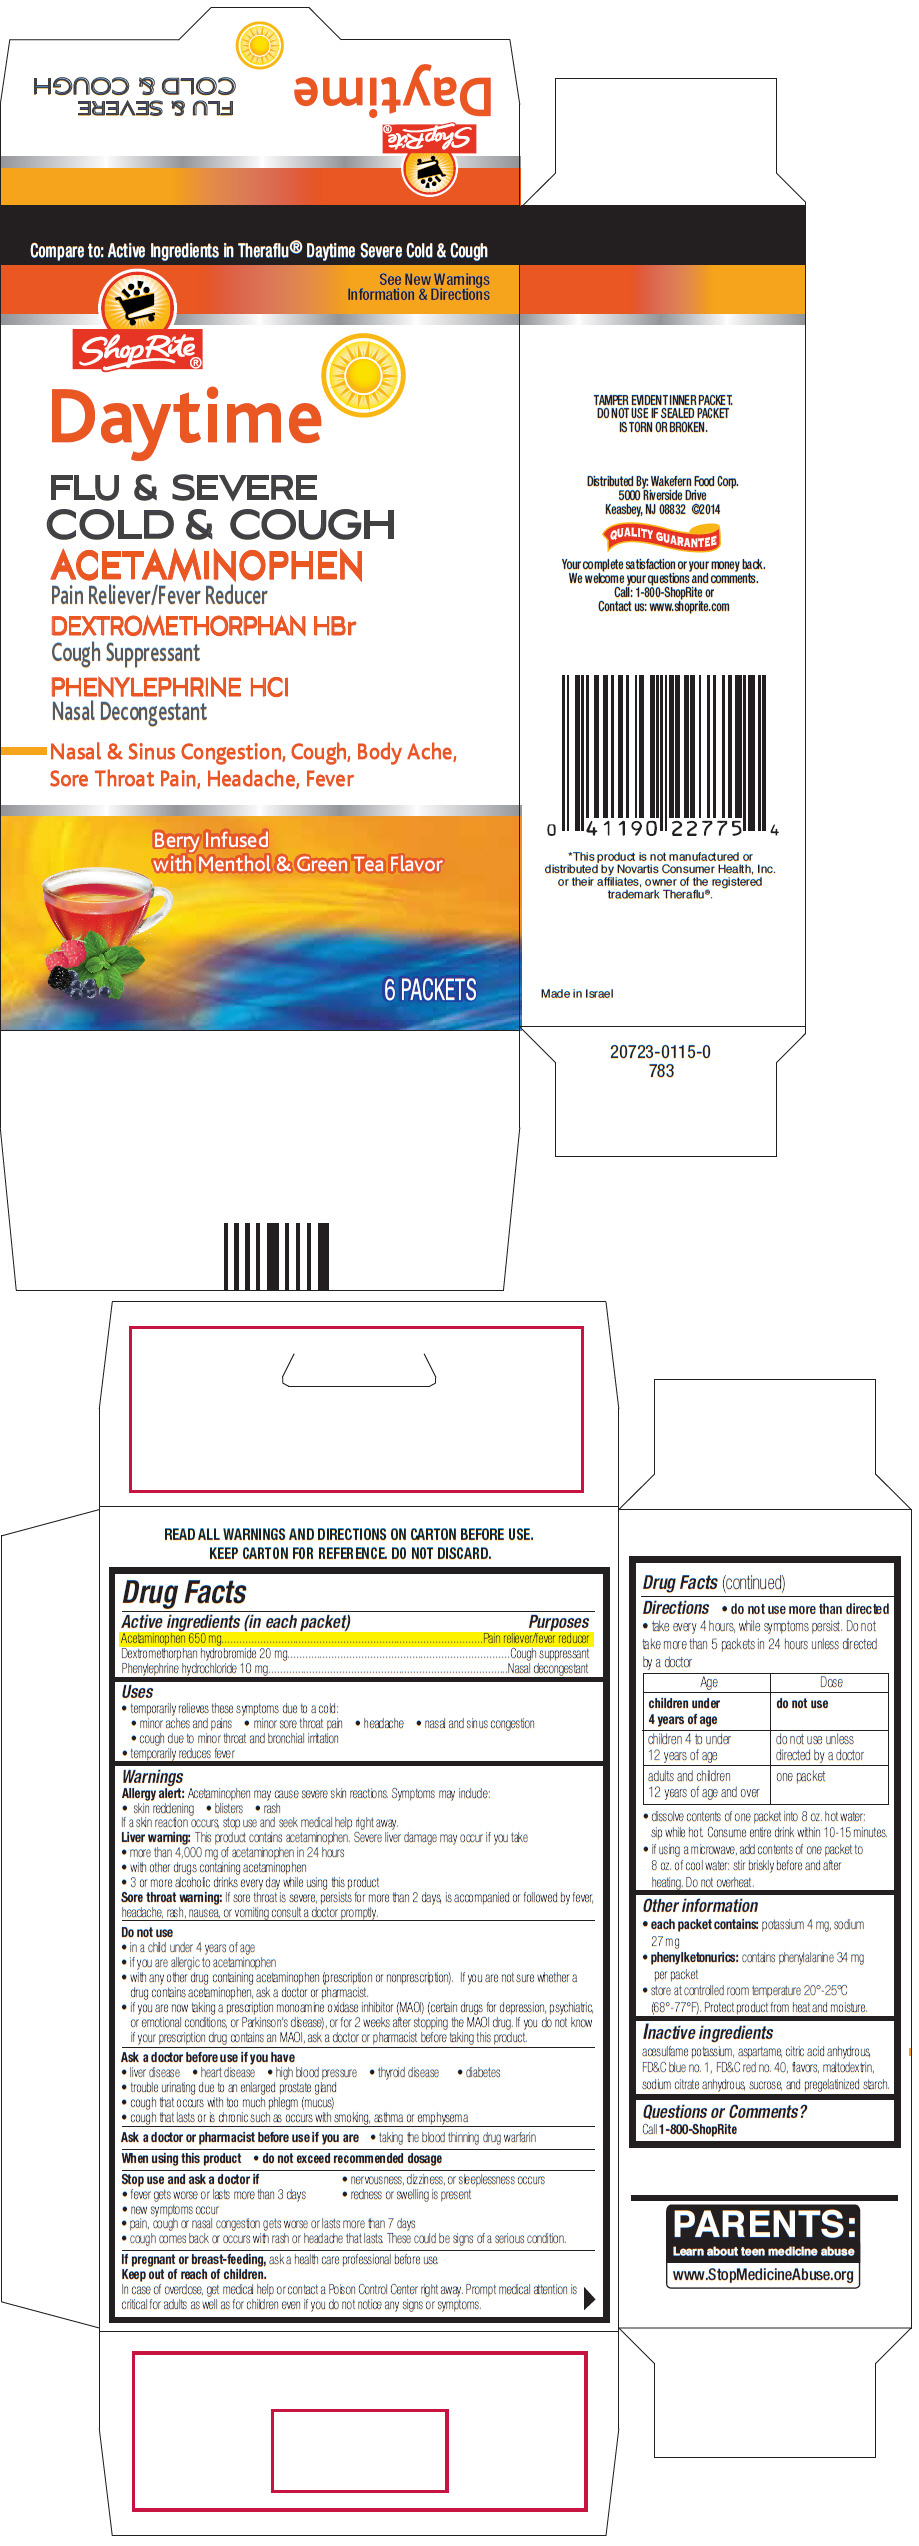 Shoprite Daytime Flu Plus Severe Cold And Cough (Acetaminophen, Dextromethorphan Hydrobromide, And Phenylephrine Hydrochloride) Powder, For Solution [Wakefern Food Corporation]